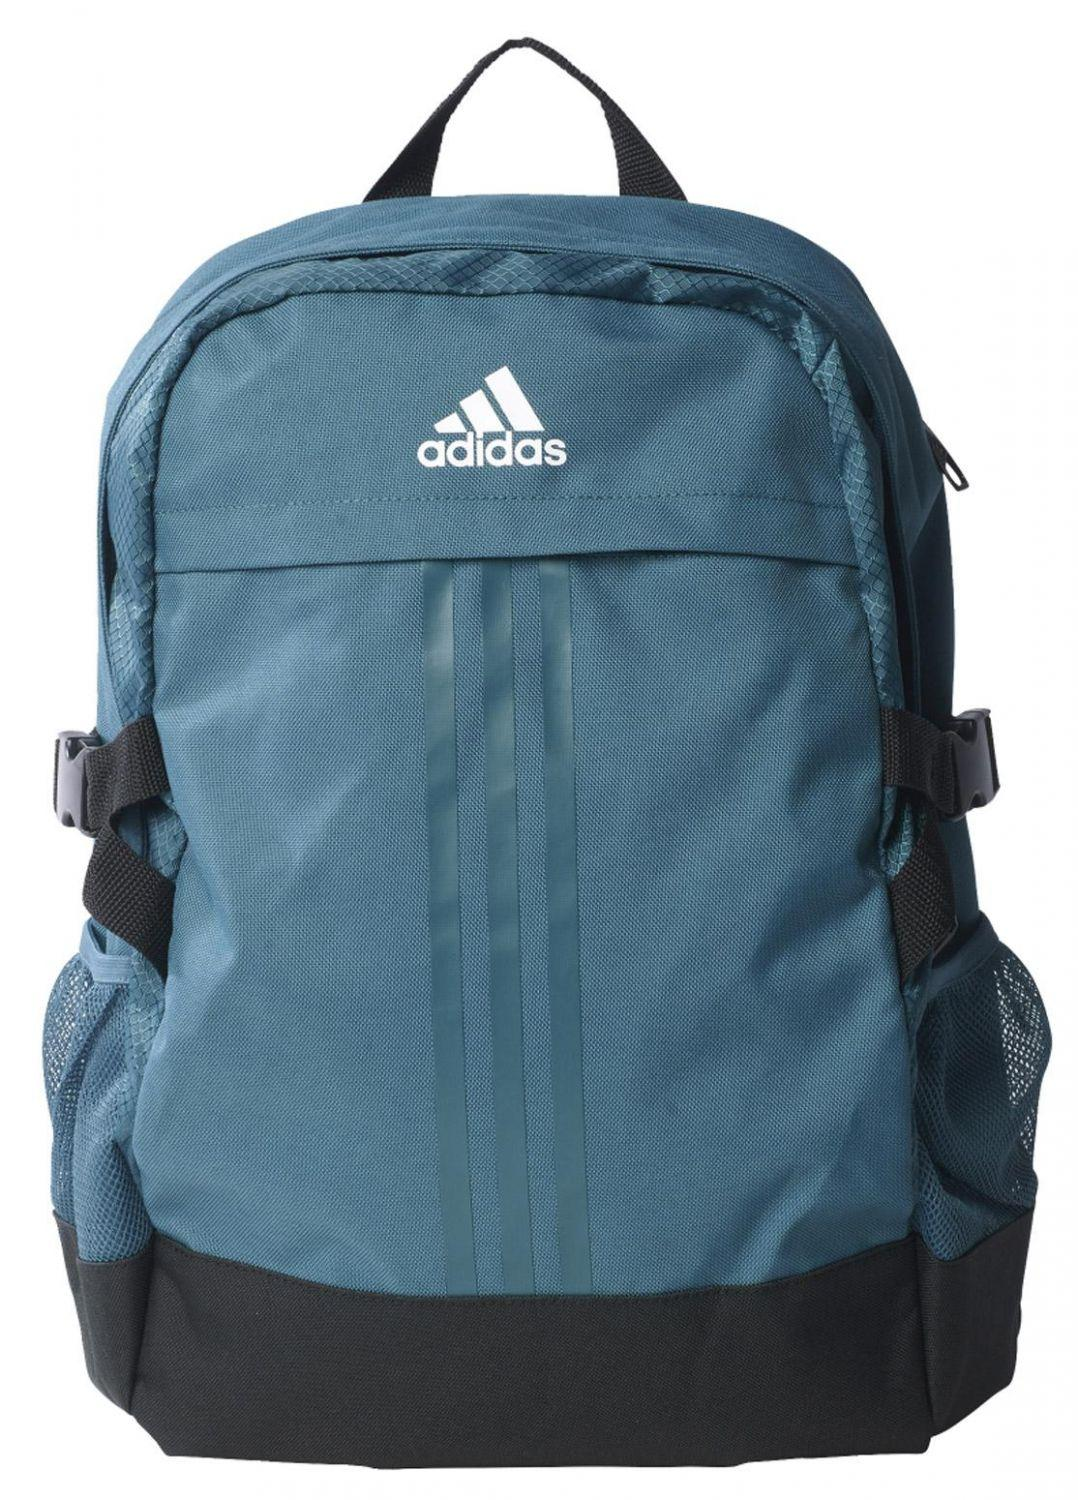 adidas Backpack Power III M Tagesrucksack (Farbe: tech green f16/tech green f16/white)